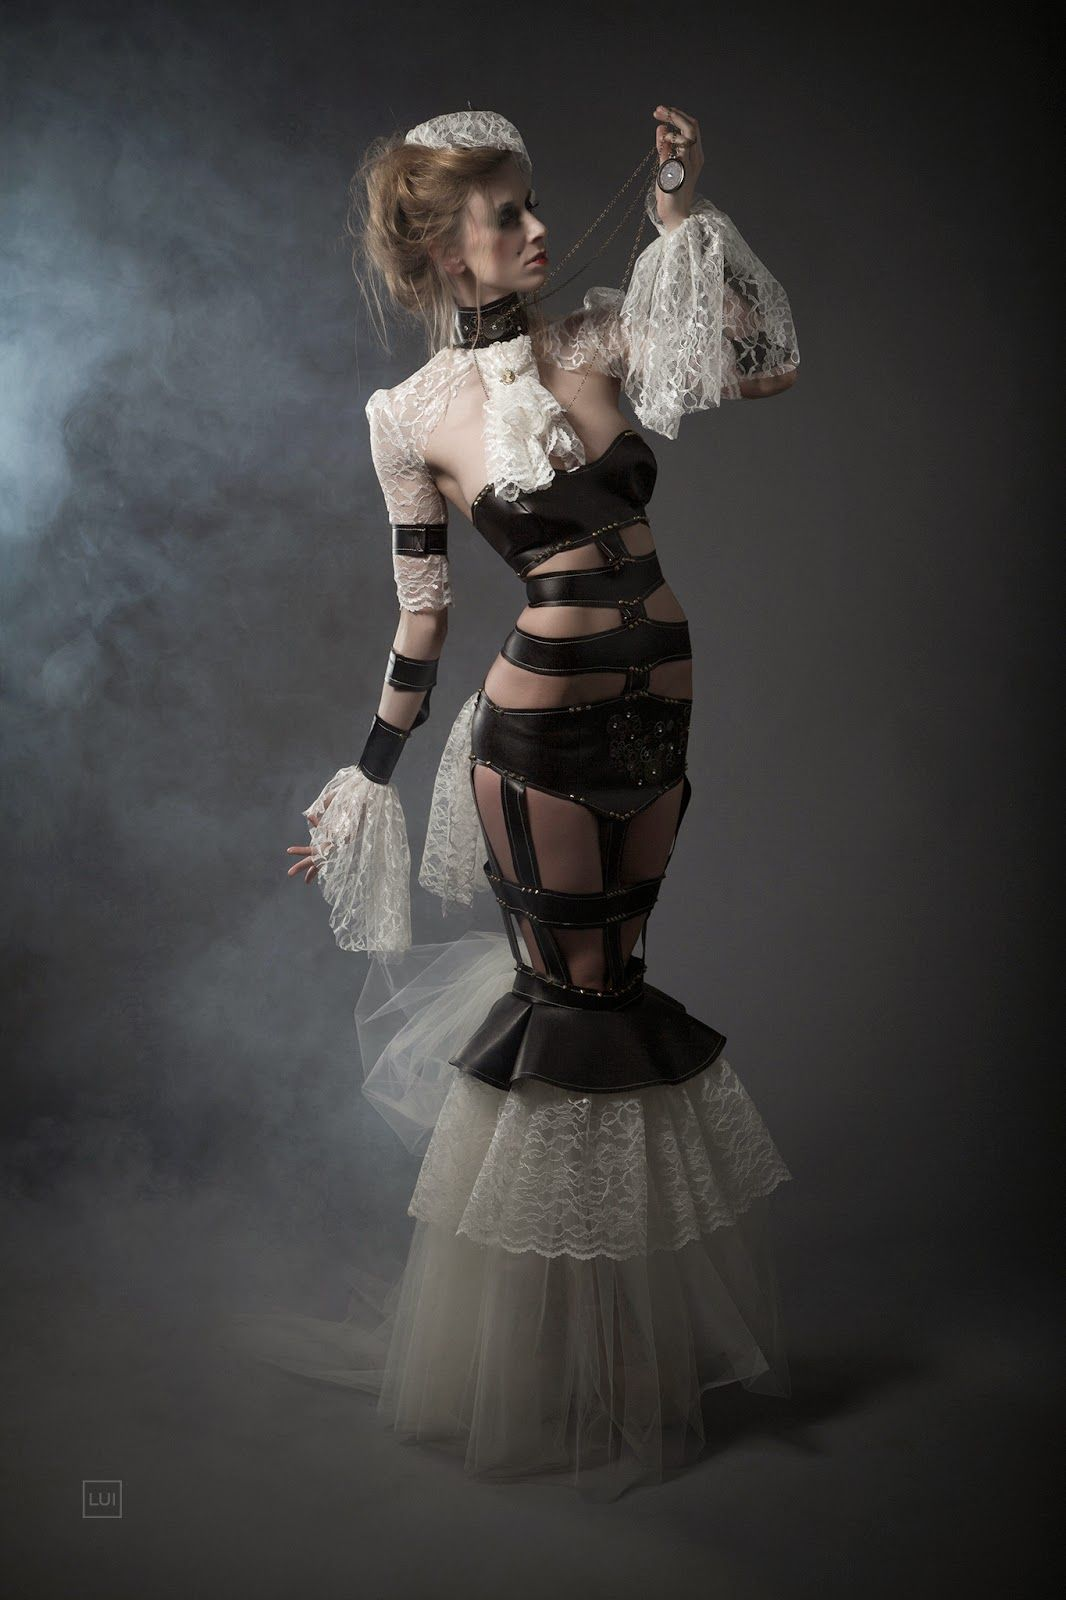 leather and lace steampunk couture dress  lui cardenas photography  photographer  lui cardenas